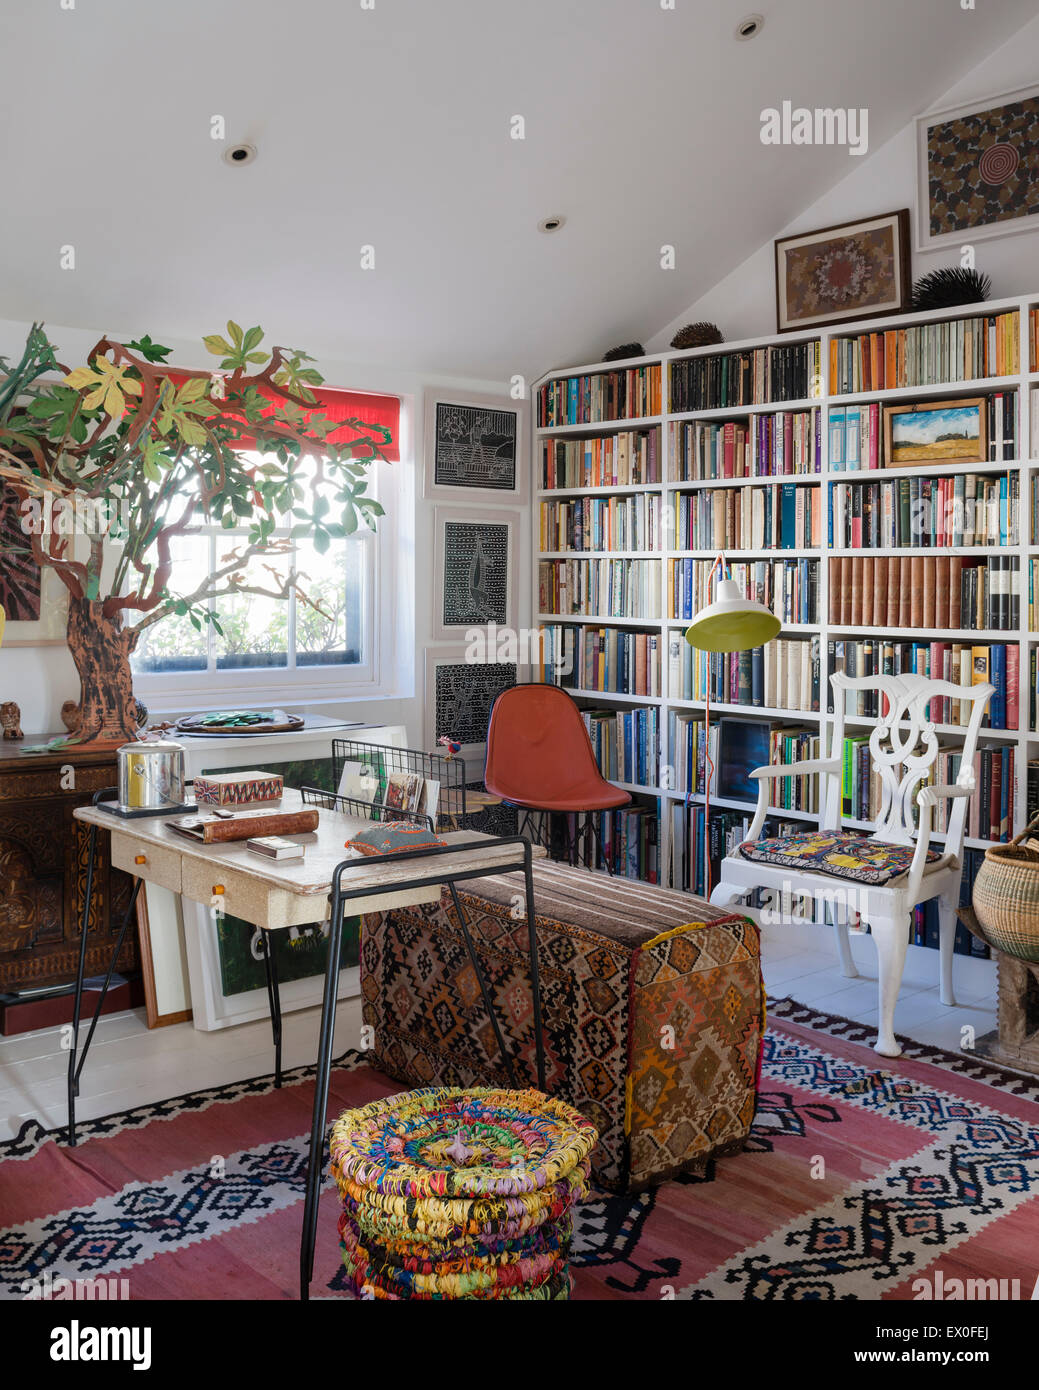 Inbuilt Book Shelving In Living Room With Uzbek Rug Kilim Covered Bench And Aboriginal Wall Art